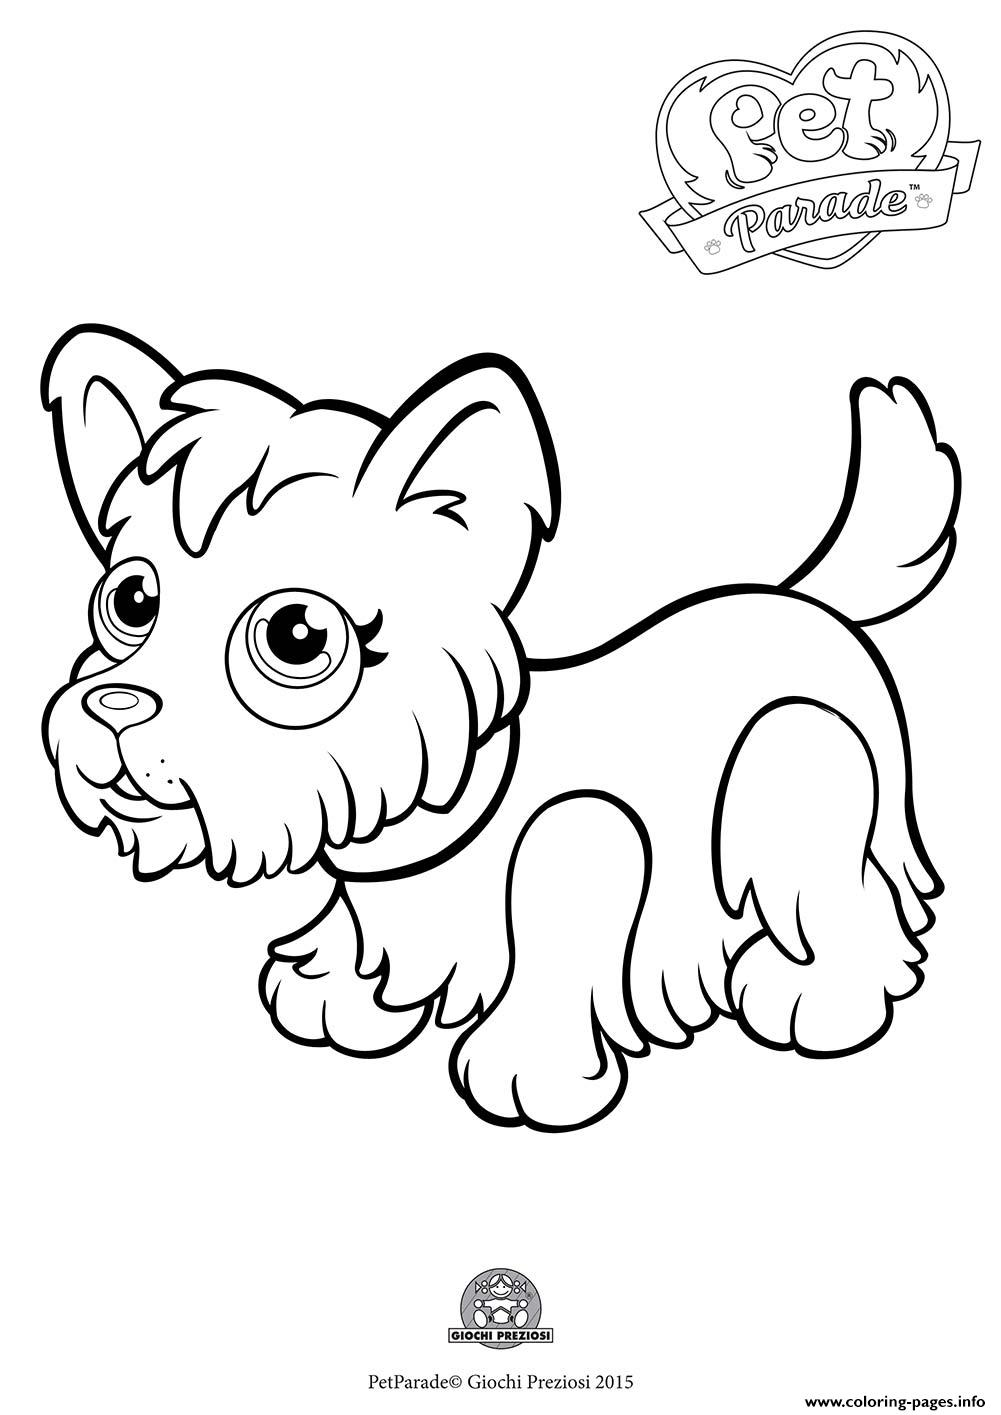 Parade coloring pages to print for adults - Pet Parade Cute Dog Yorkshire Coloring Pages Print Download 331 Prints